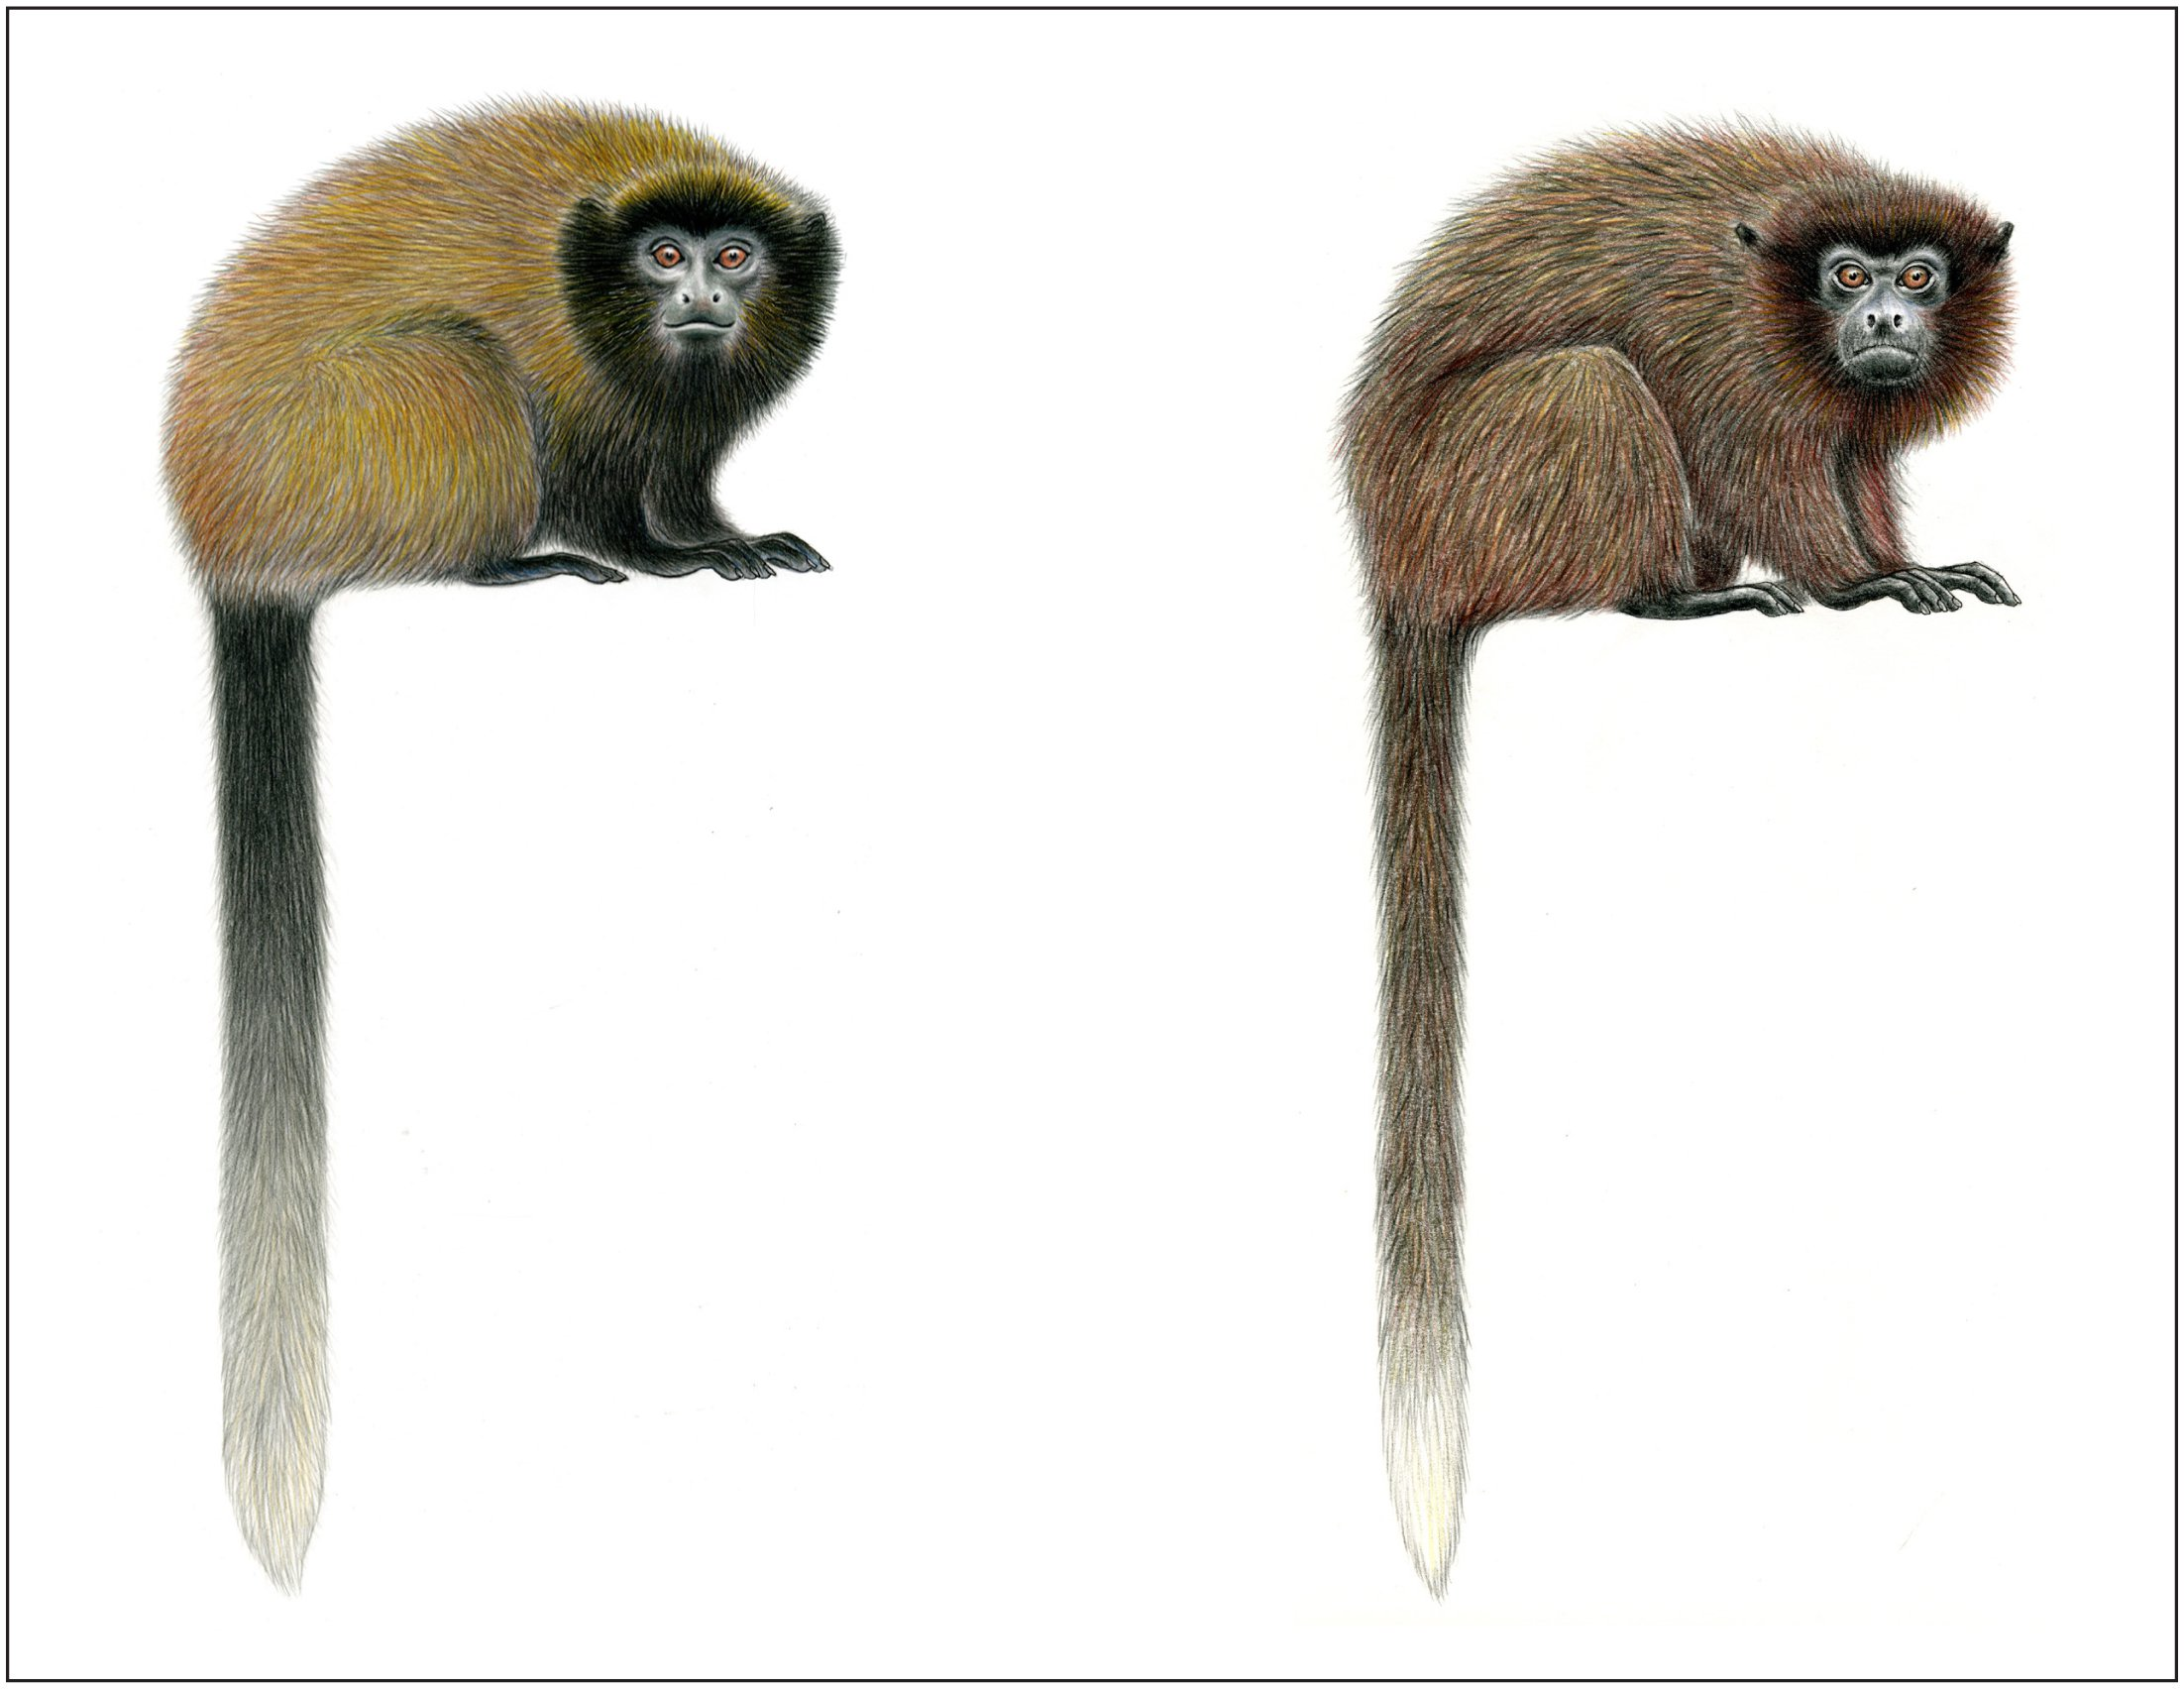 The Distribution and Taxonomy of Titi Monkeys (Callicebus) in Central and  Southern Peru, with the Description of a New Species